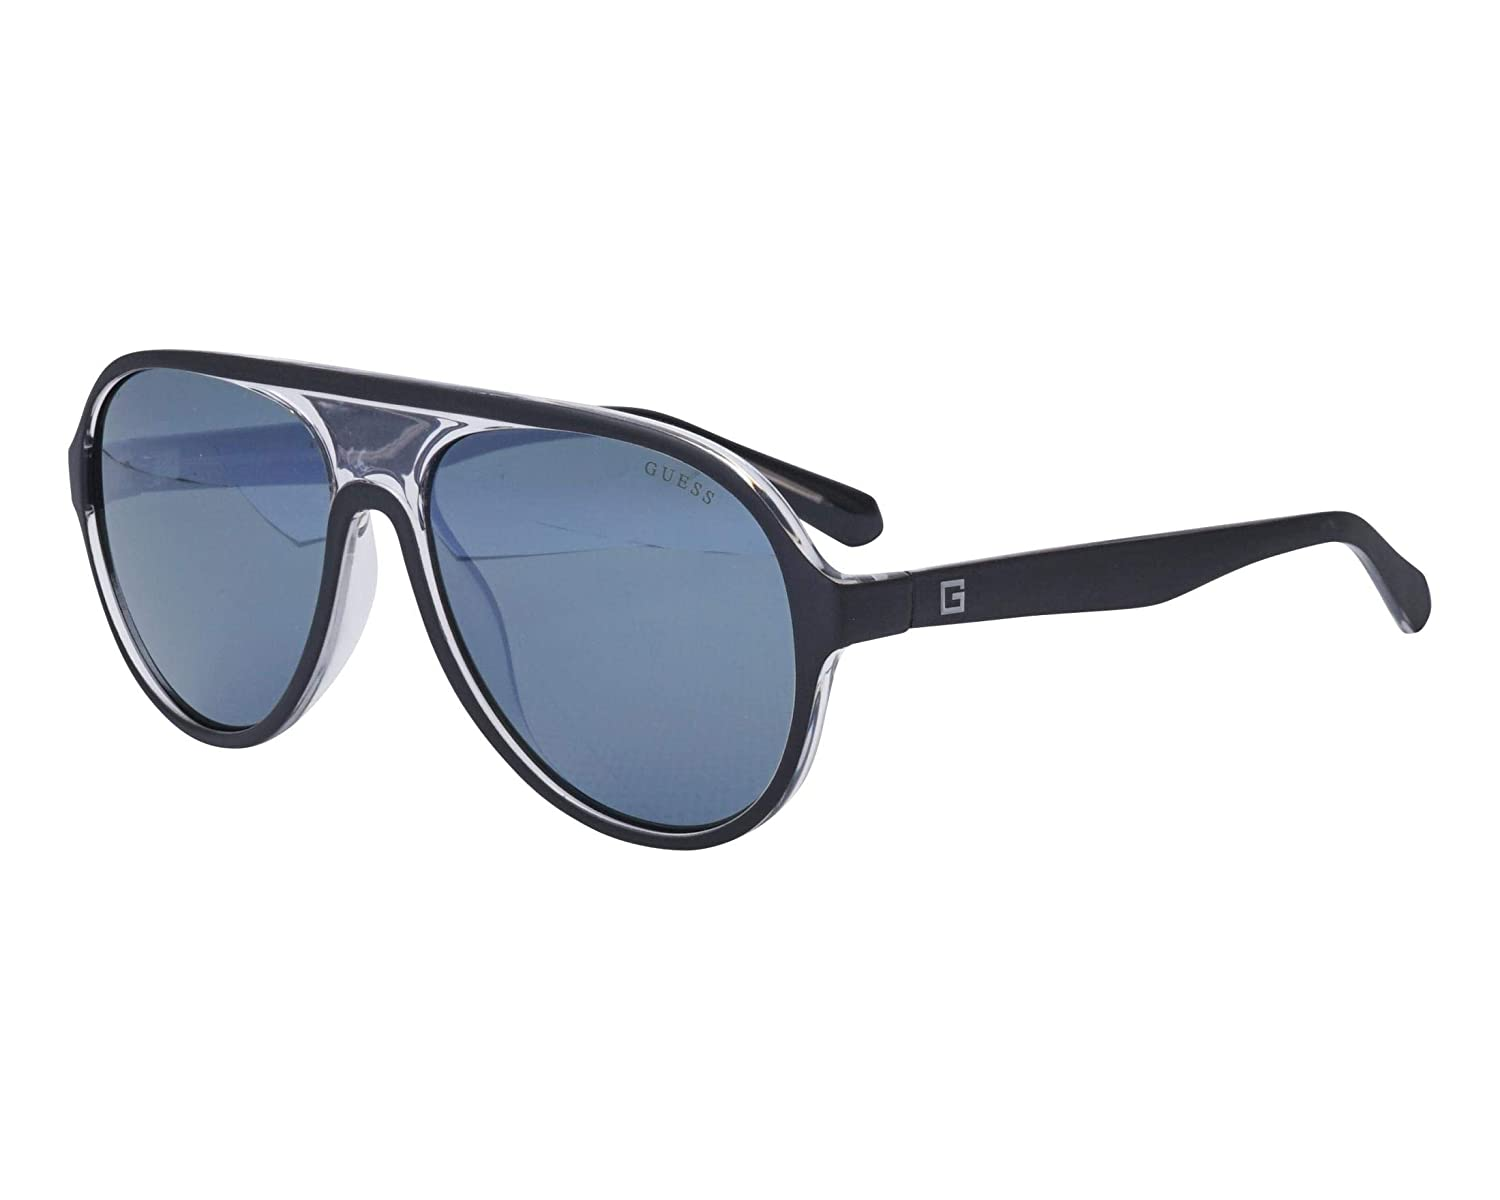 Amazon.com: Gafas de sol Guess (GU-6942 02C) negro mate ...